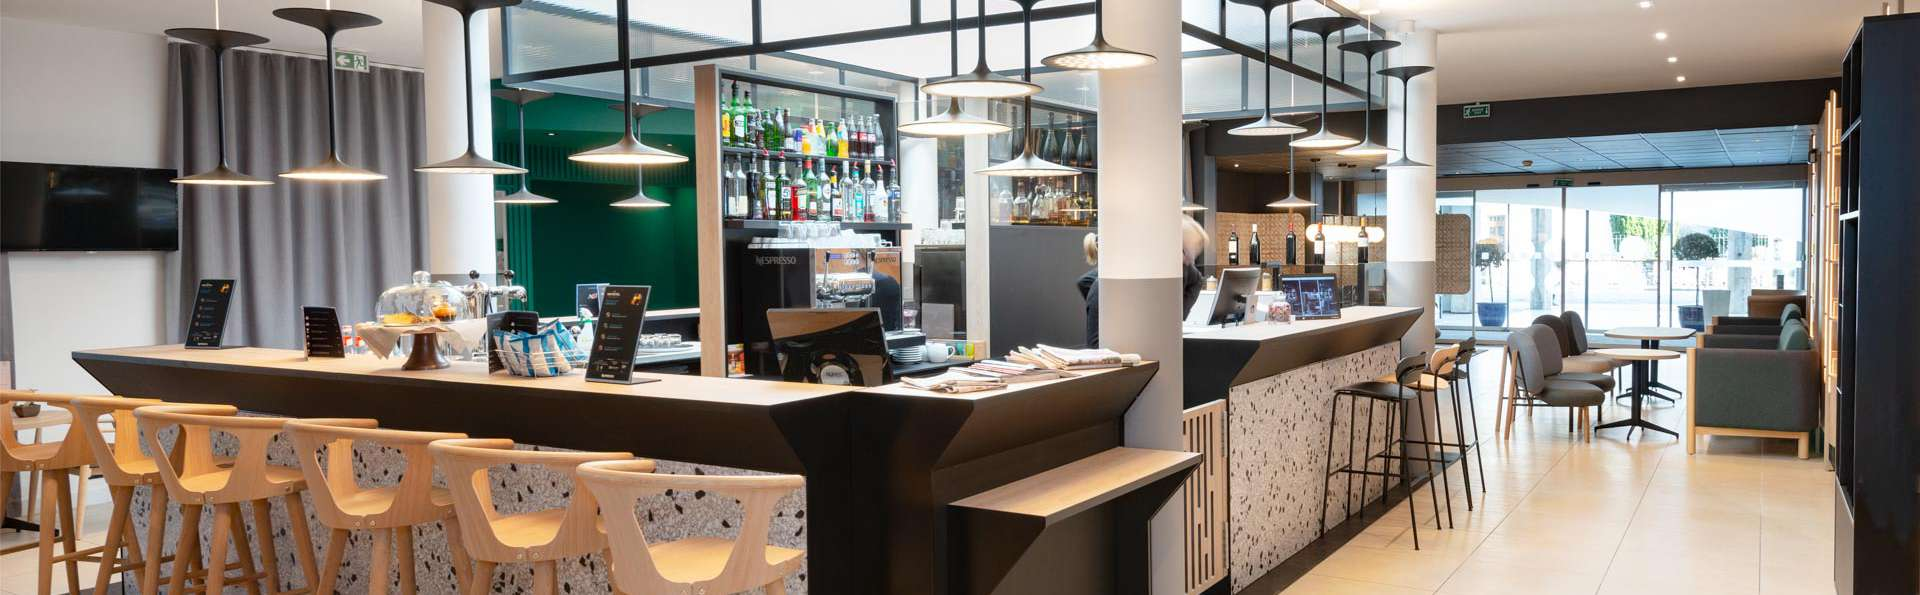 Novotel Blois Centre Val de Loire - EDIT_BAR_02.jpg